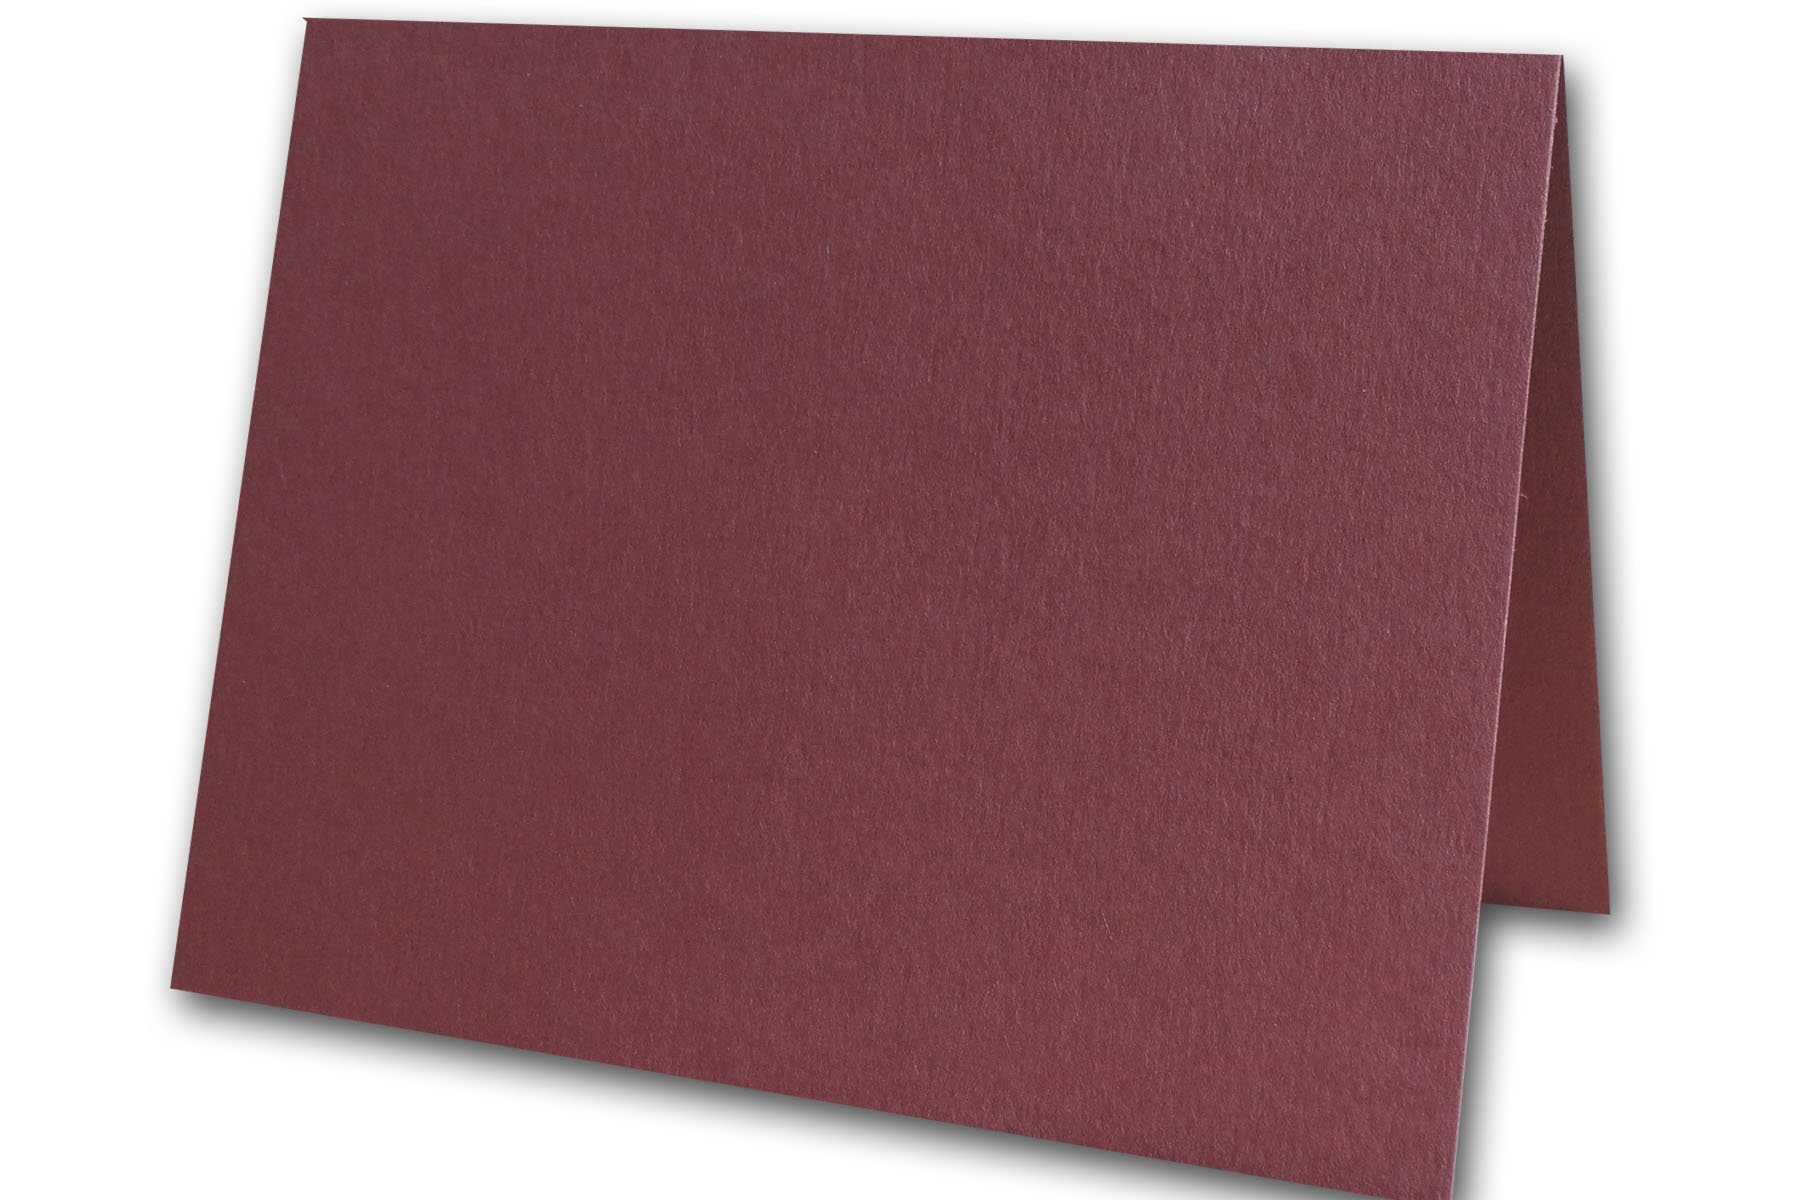 Blank Colorful Place Cards Tent Cards | Size 3.5'' x 5'' Flat 2.5'' x 3.5'' Folded (200, Burgundy)